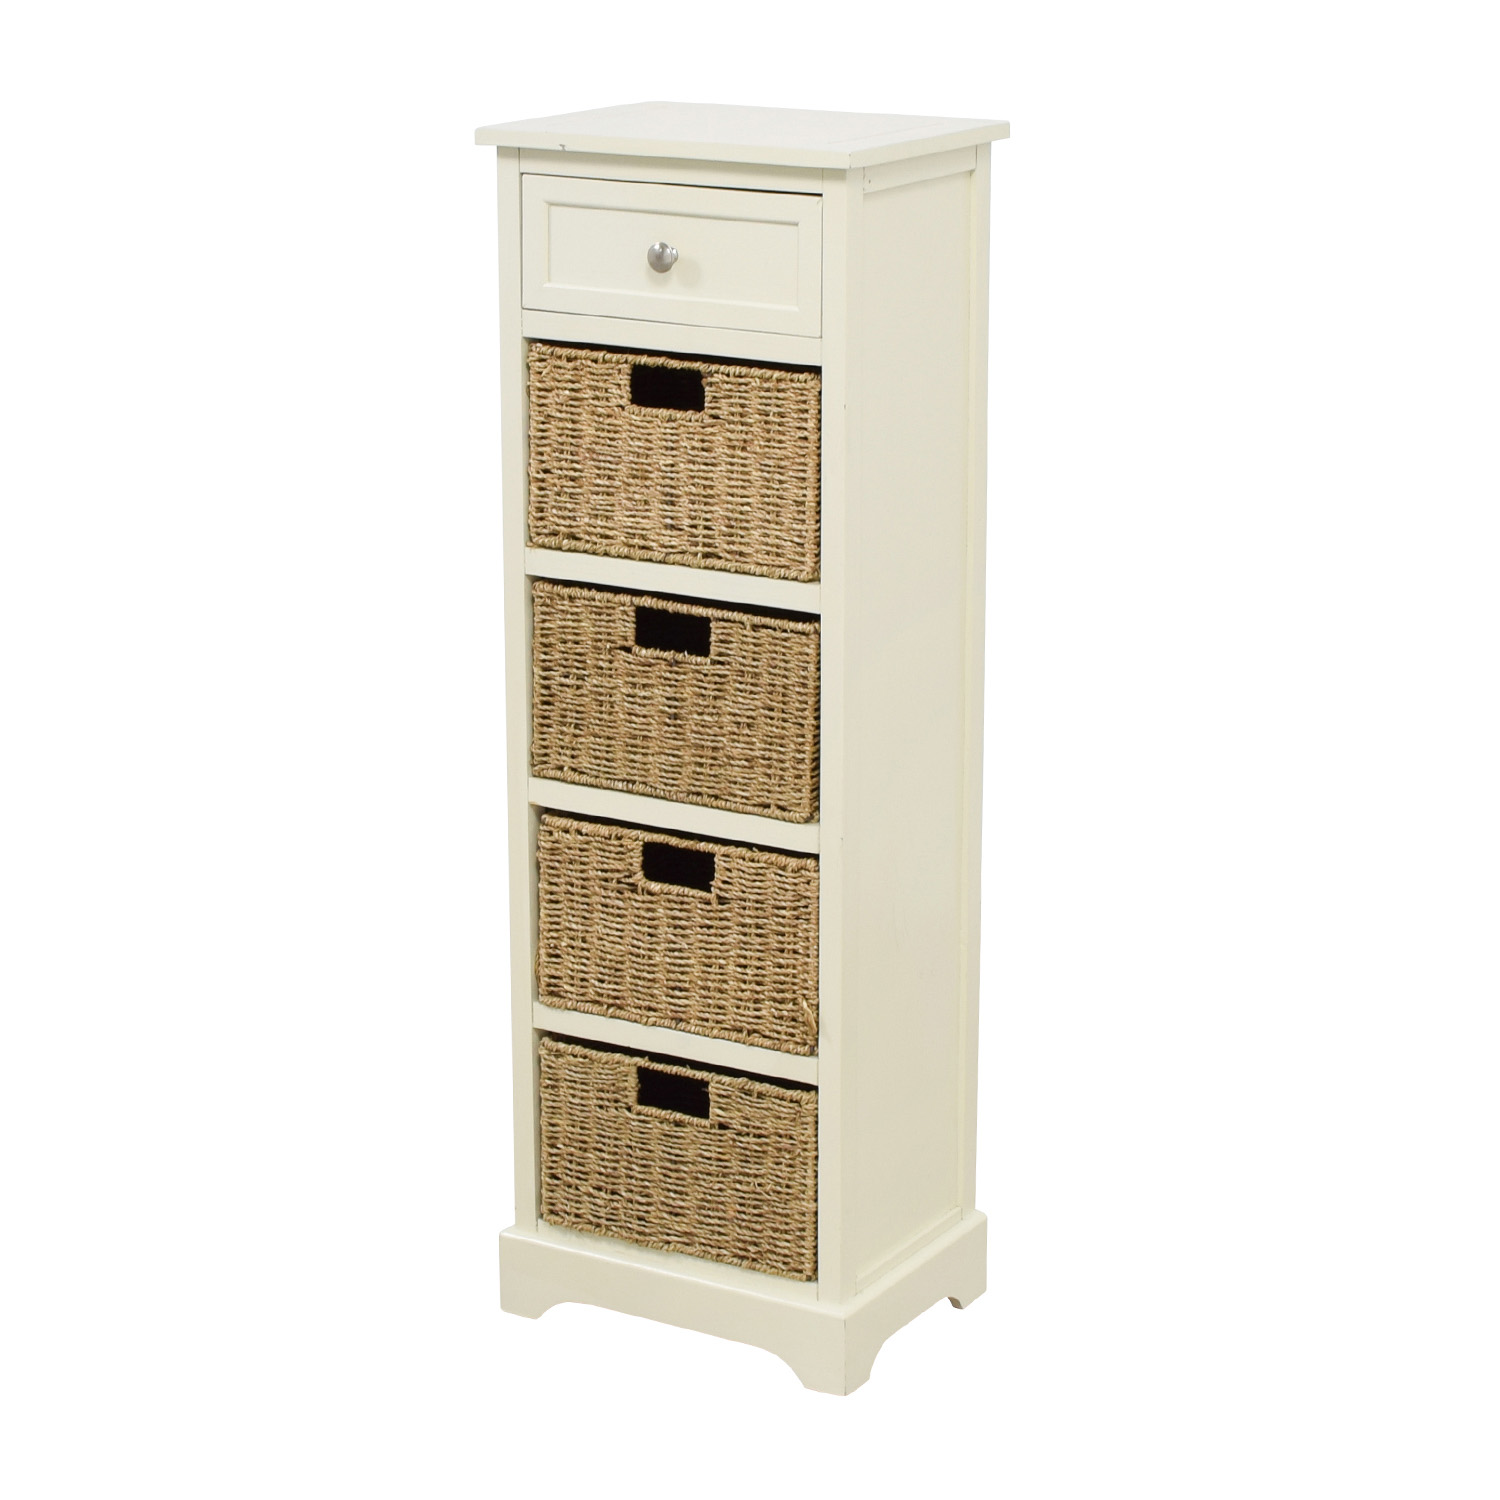 Famous 28% OFF - Tall White Storage Unit with Drawer and Wicker Baskets  AG71